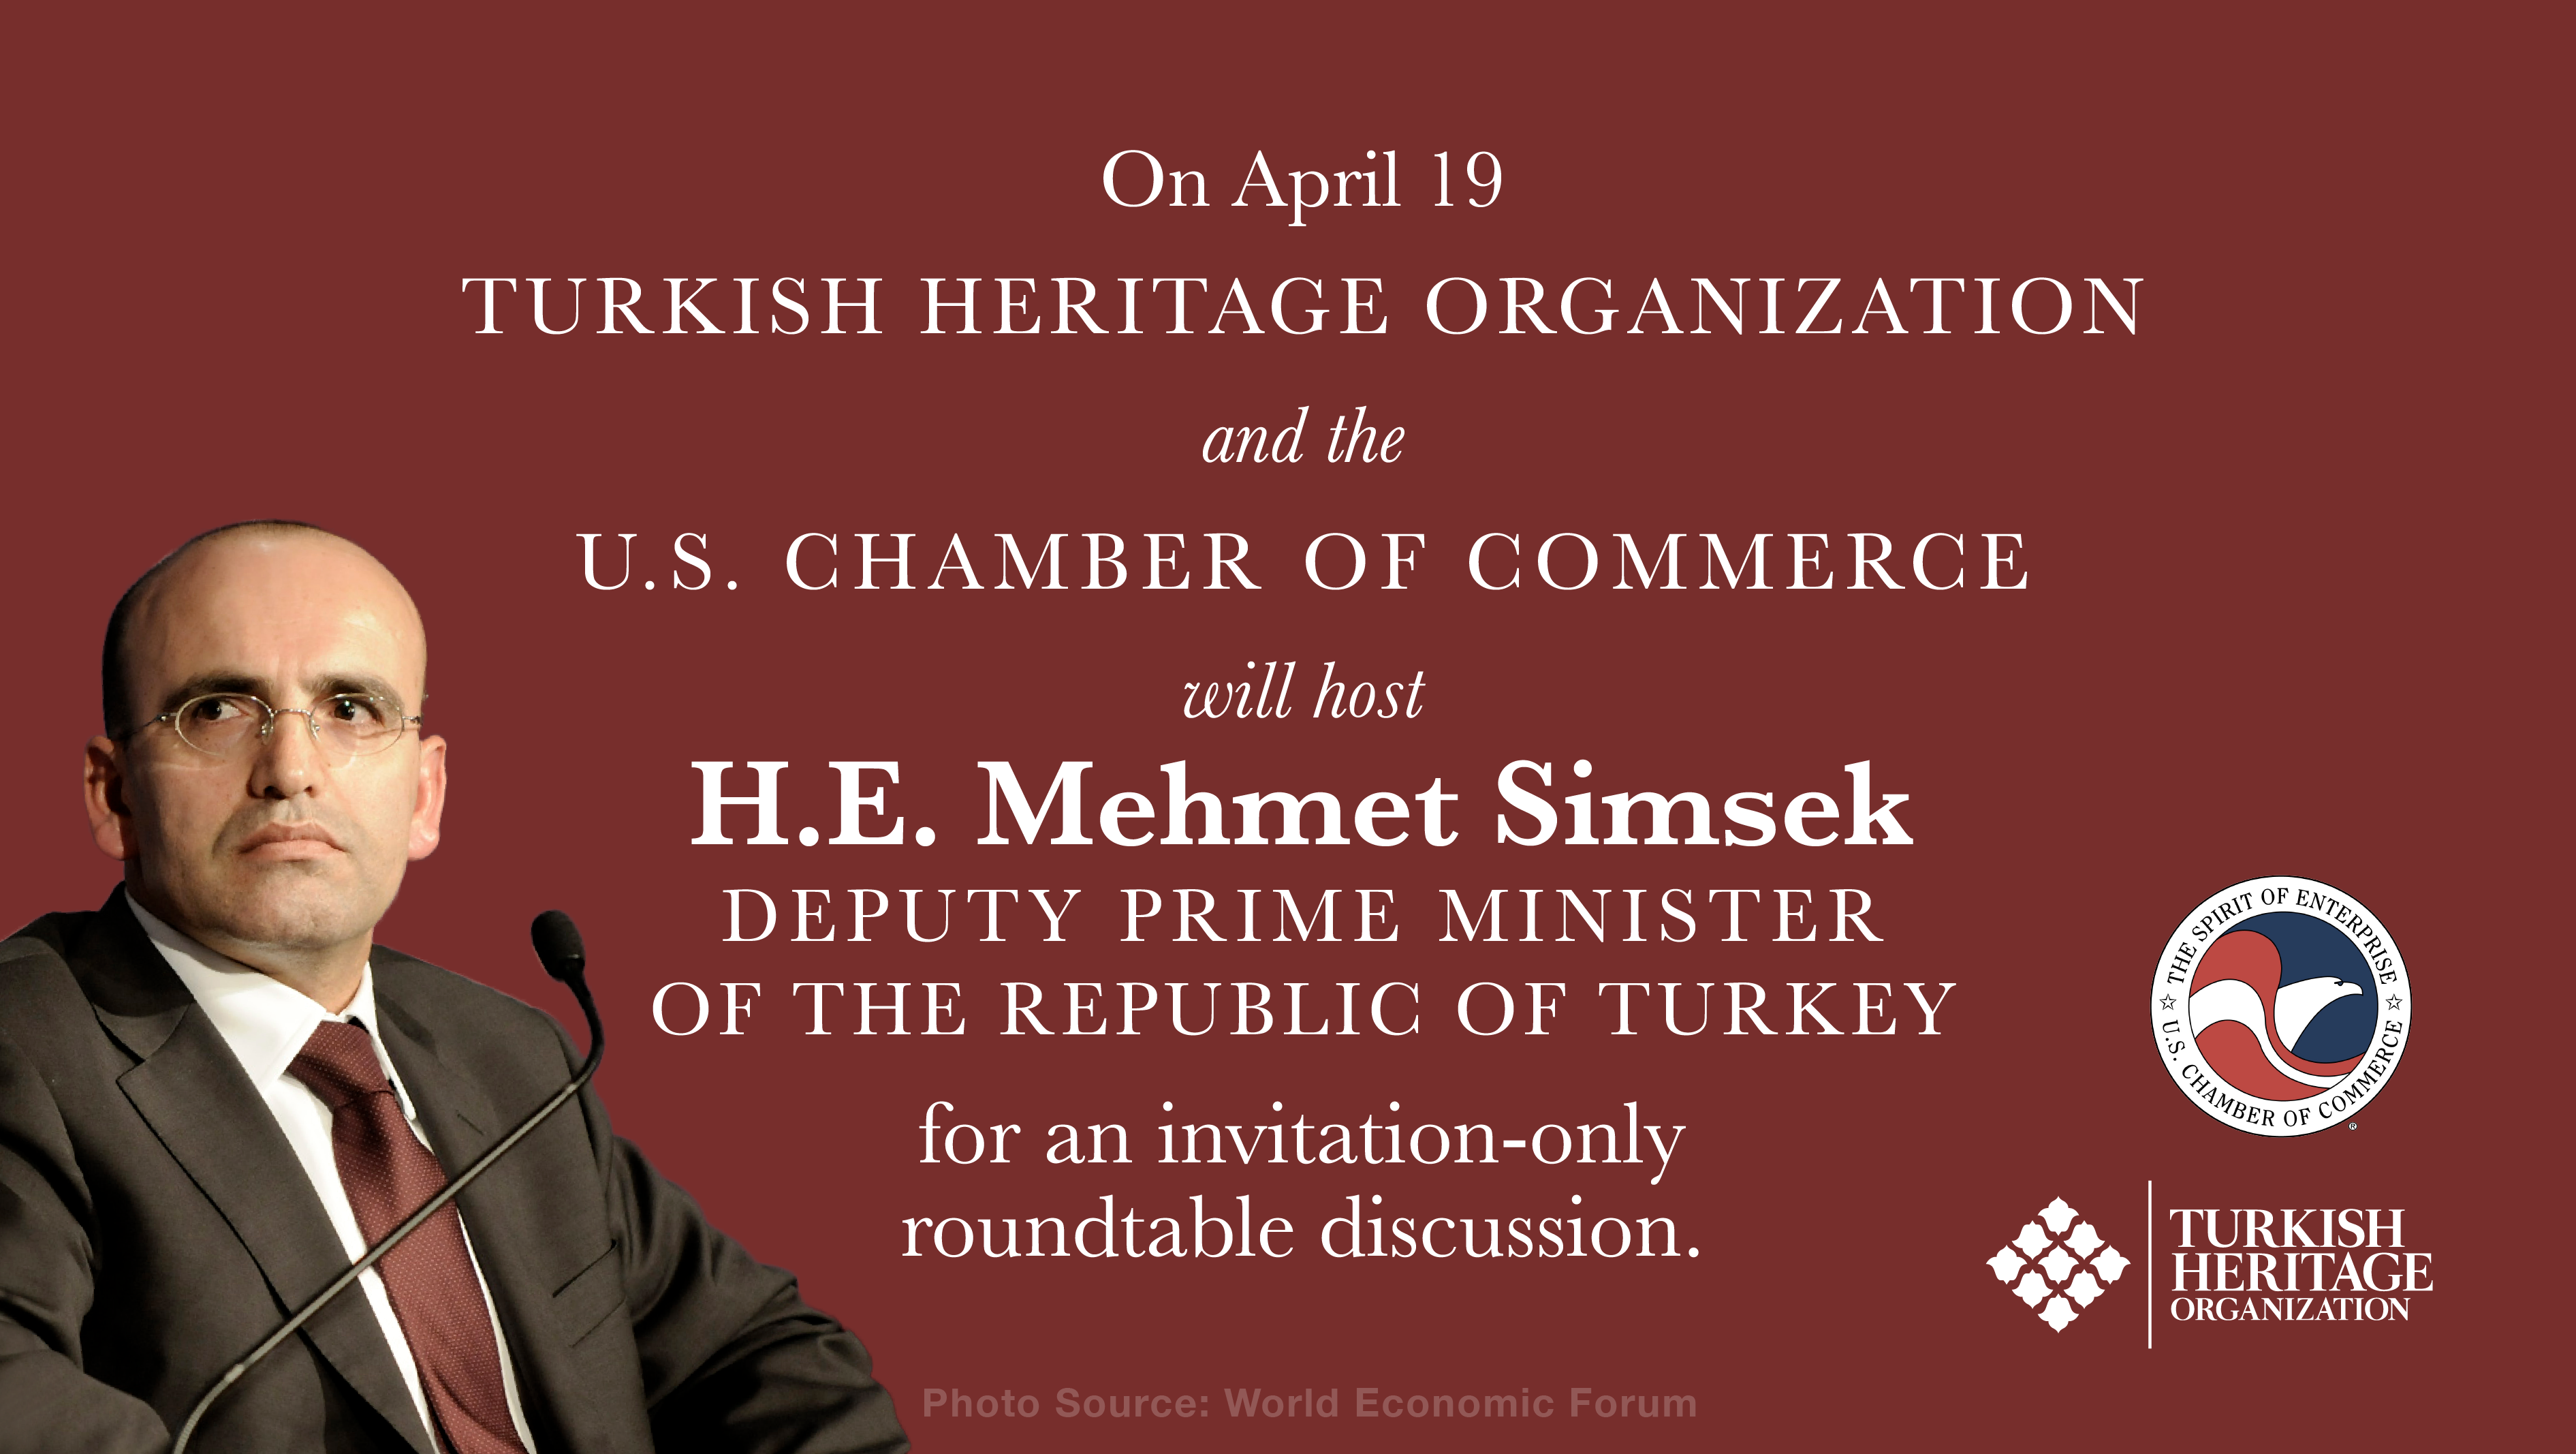 THO and U.S. Chamber of Commerce to Host H.E. Mehmet Simsek